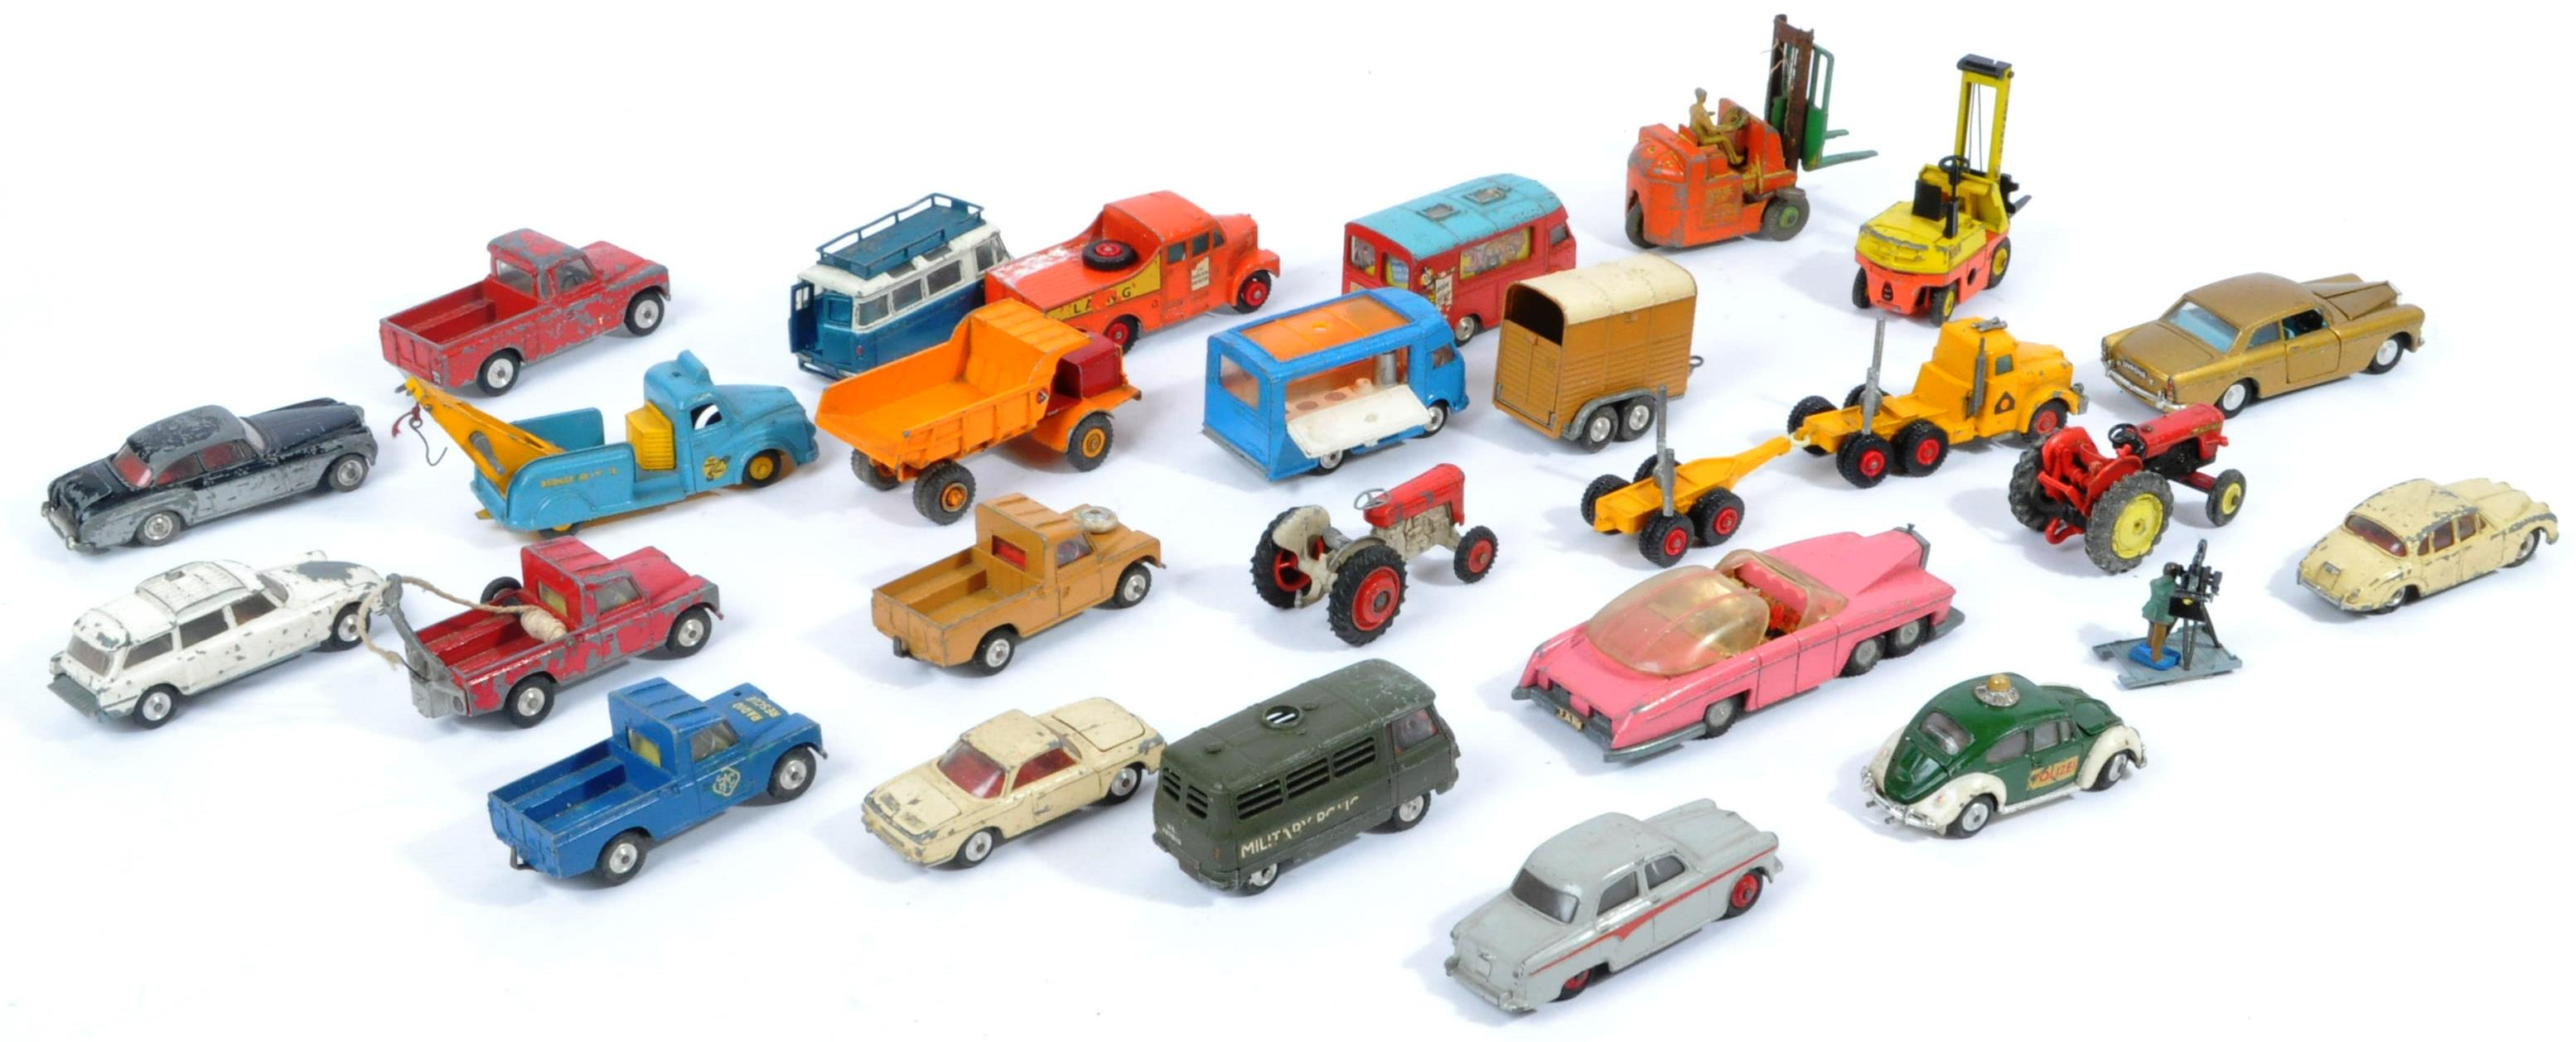 COLLECTION OF VINTAGE CORGI & DINKY TOYS DIECAST MODELS - Image 9 of 10